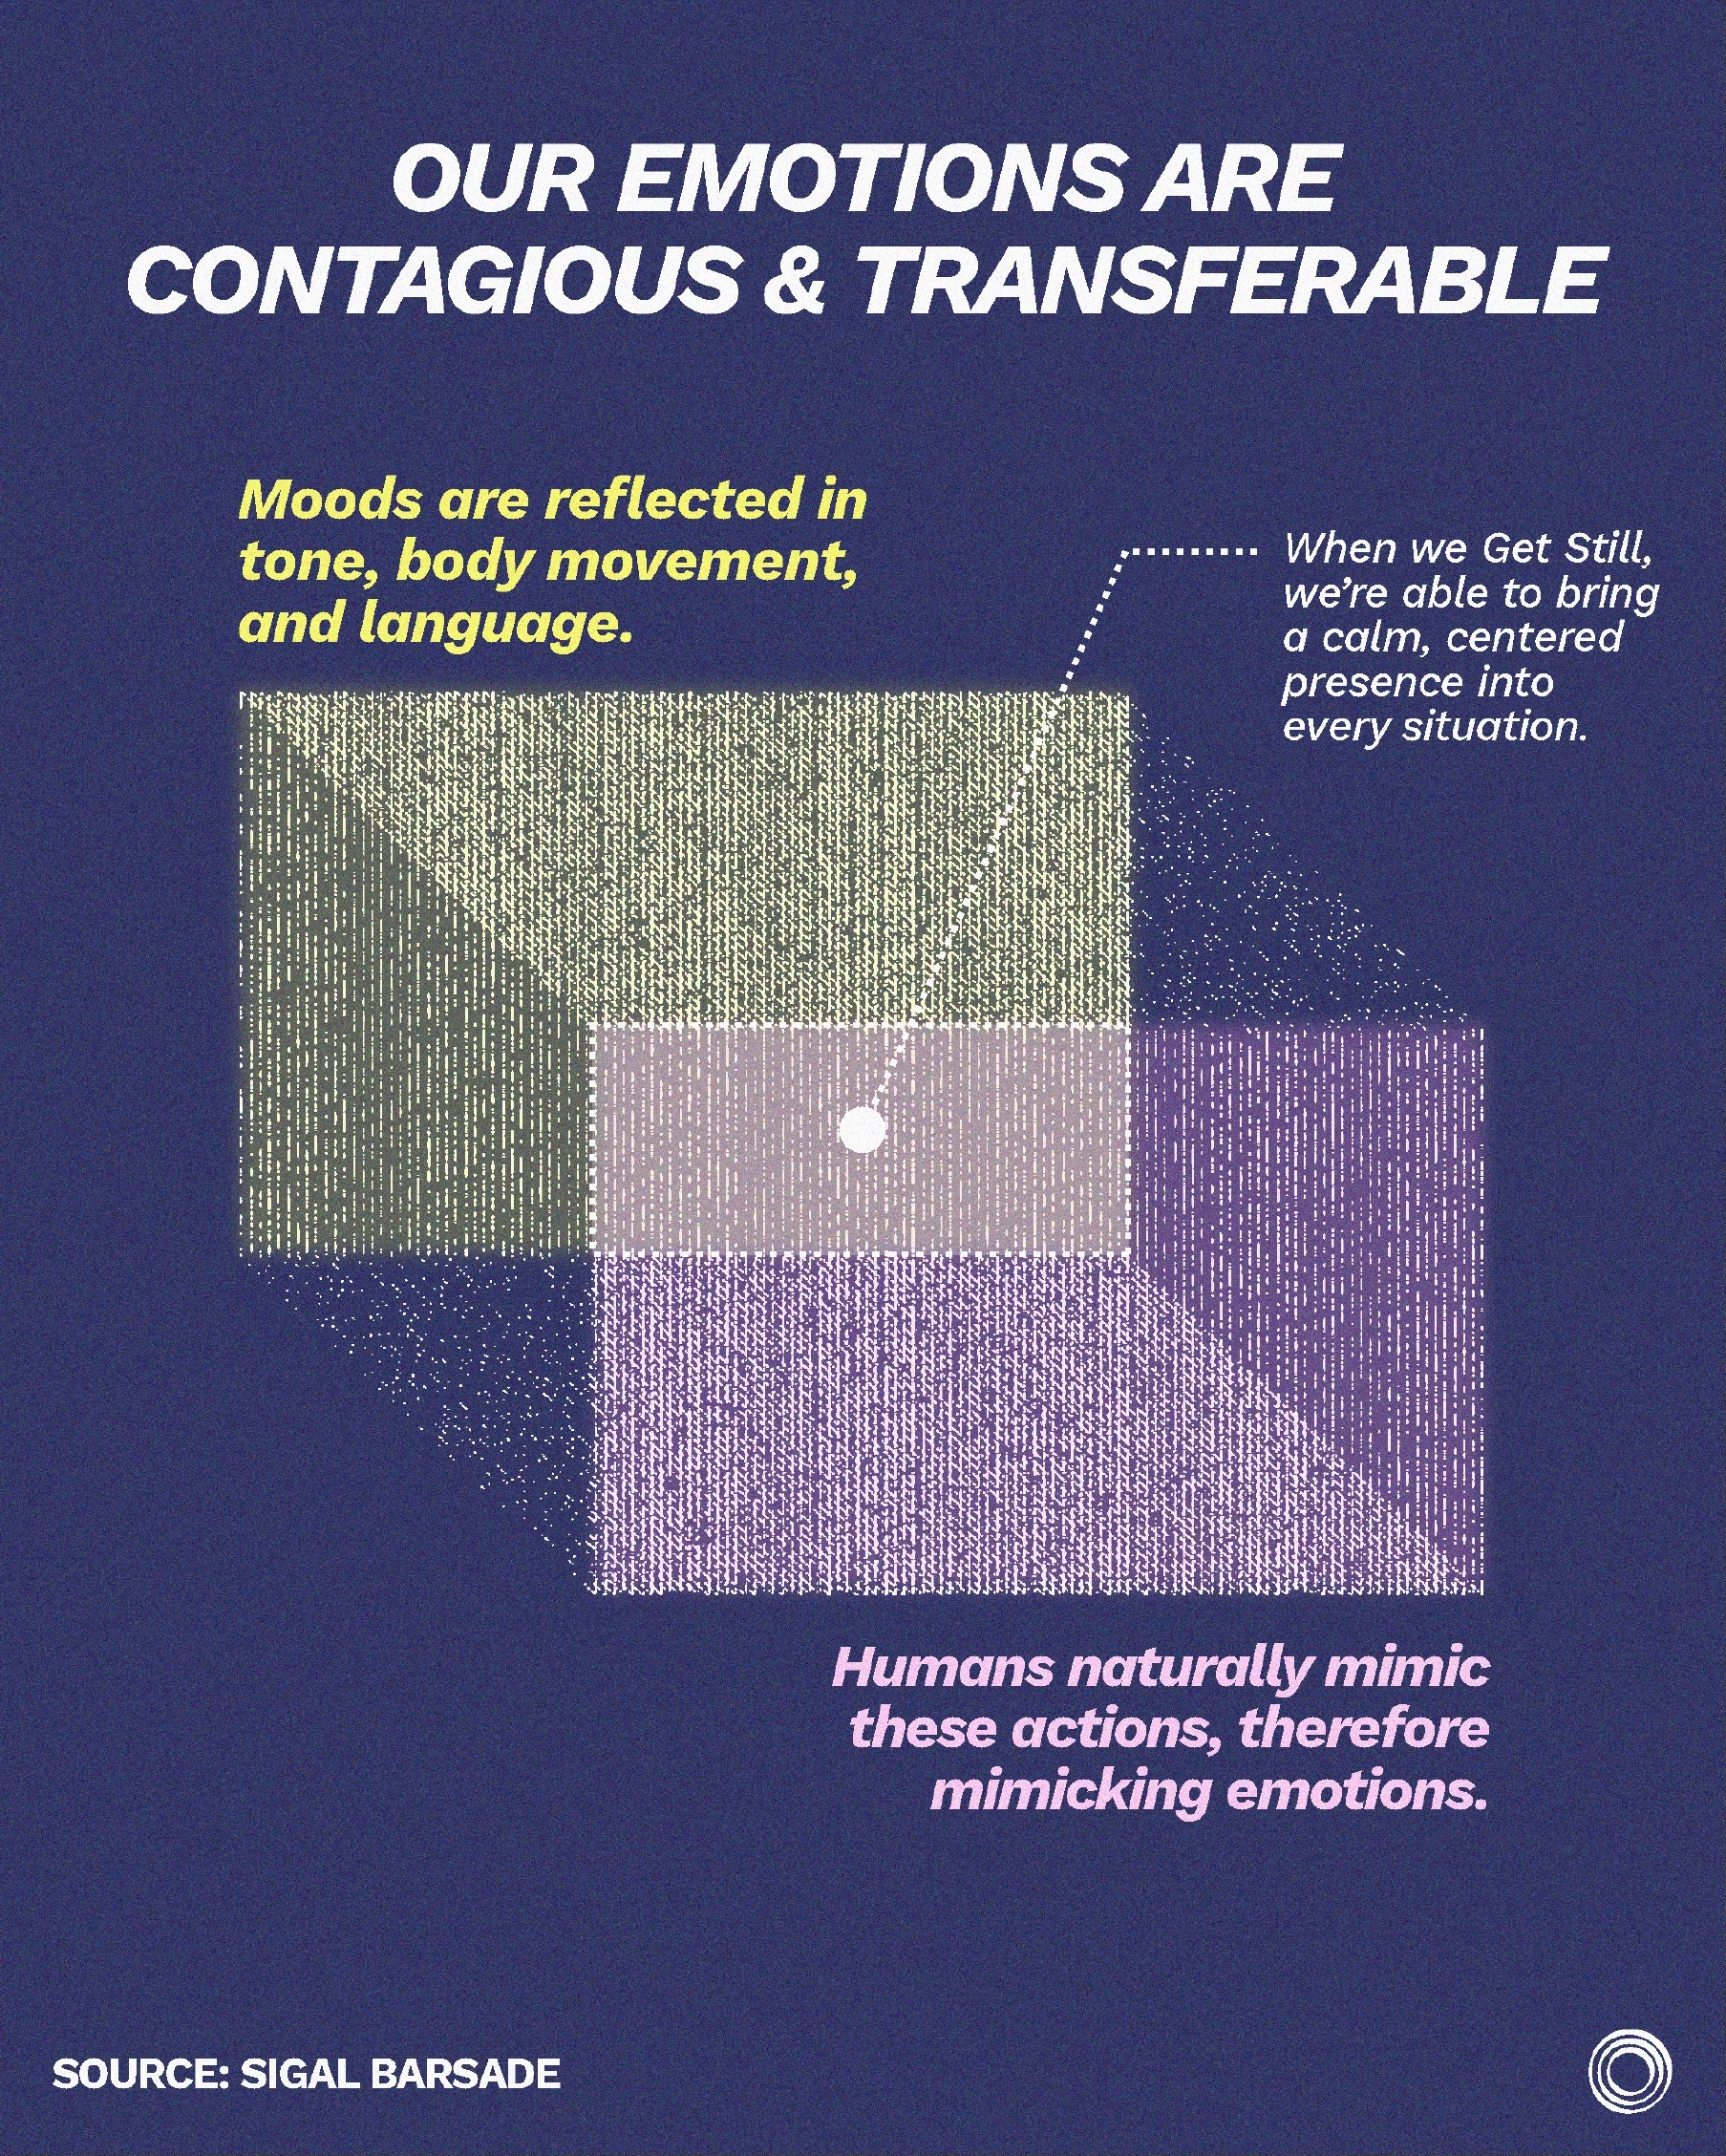 graphic showing the blending of emotions and how Stillness helps